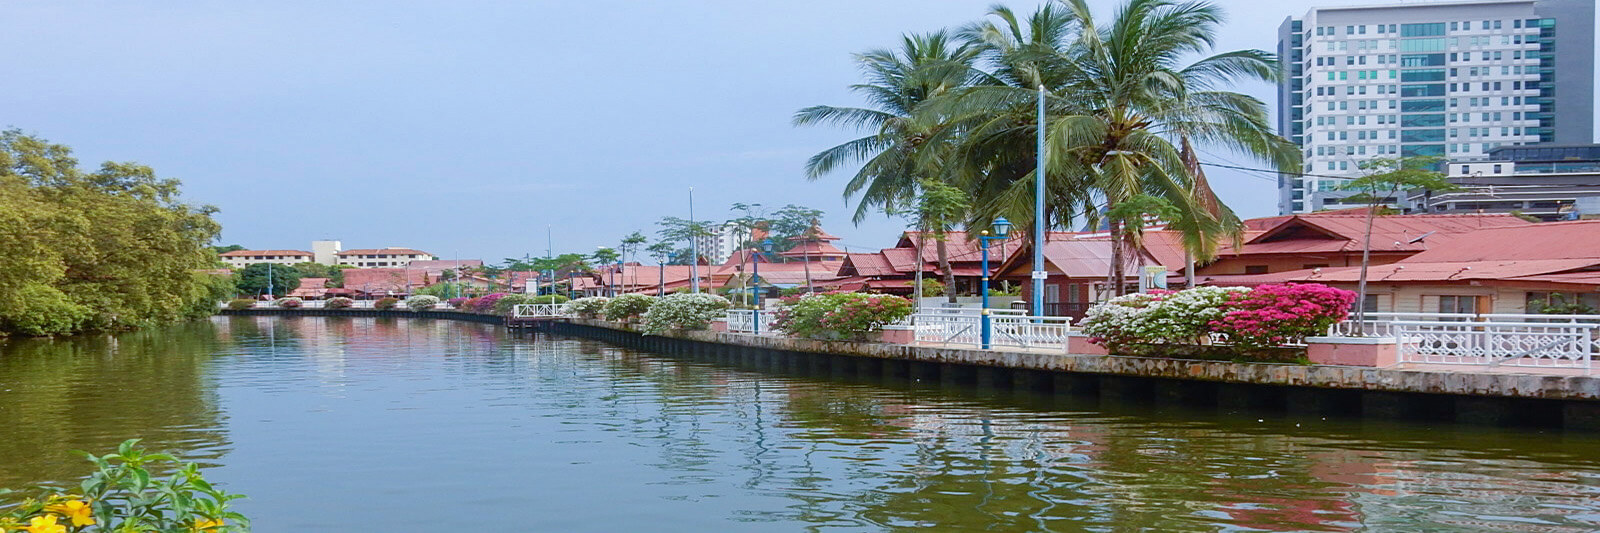 A river runs through Malacca, Malaysia